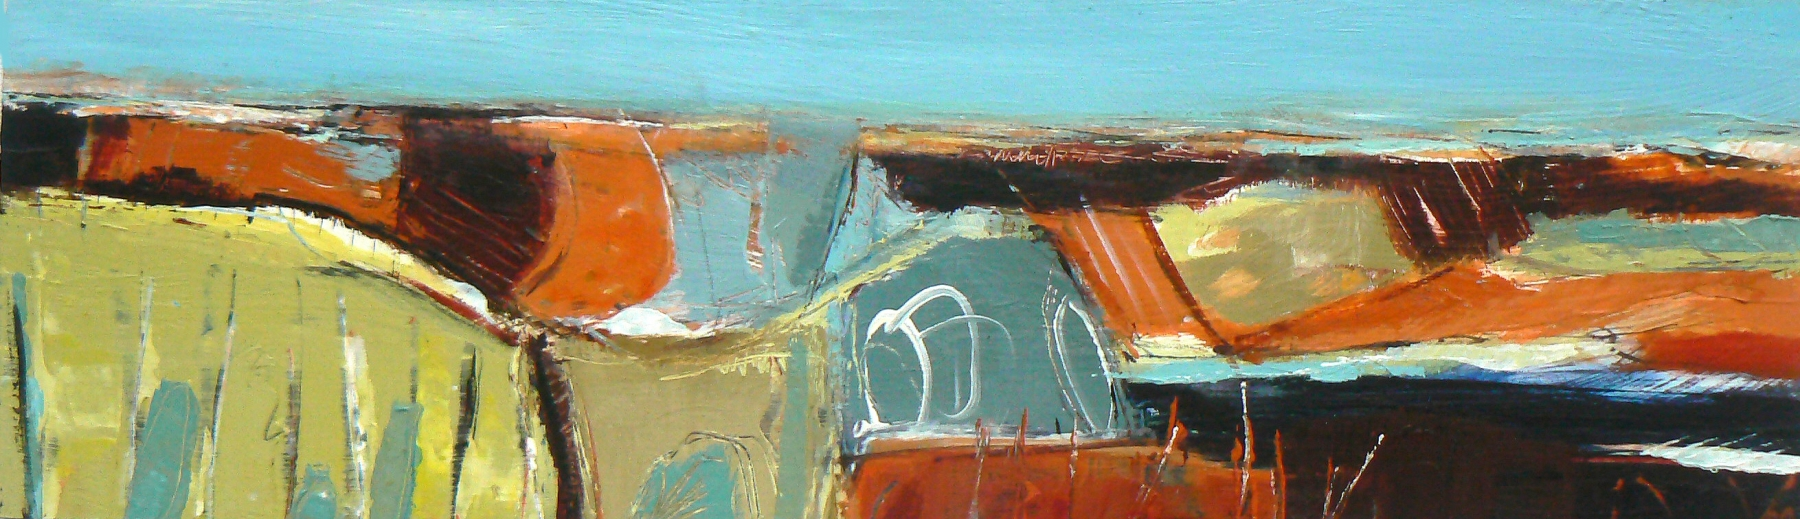 Standing Stones, 15 x 50cm, acrylic on wood panel (sold)